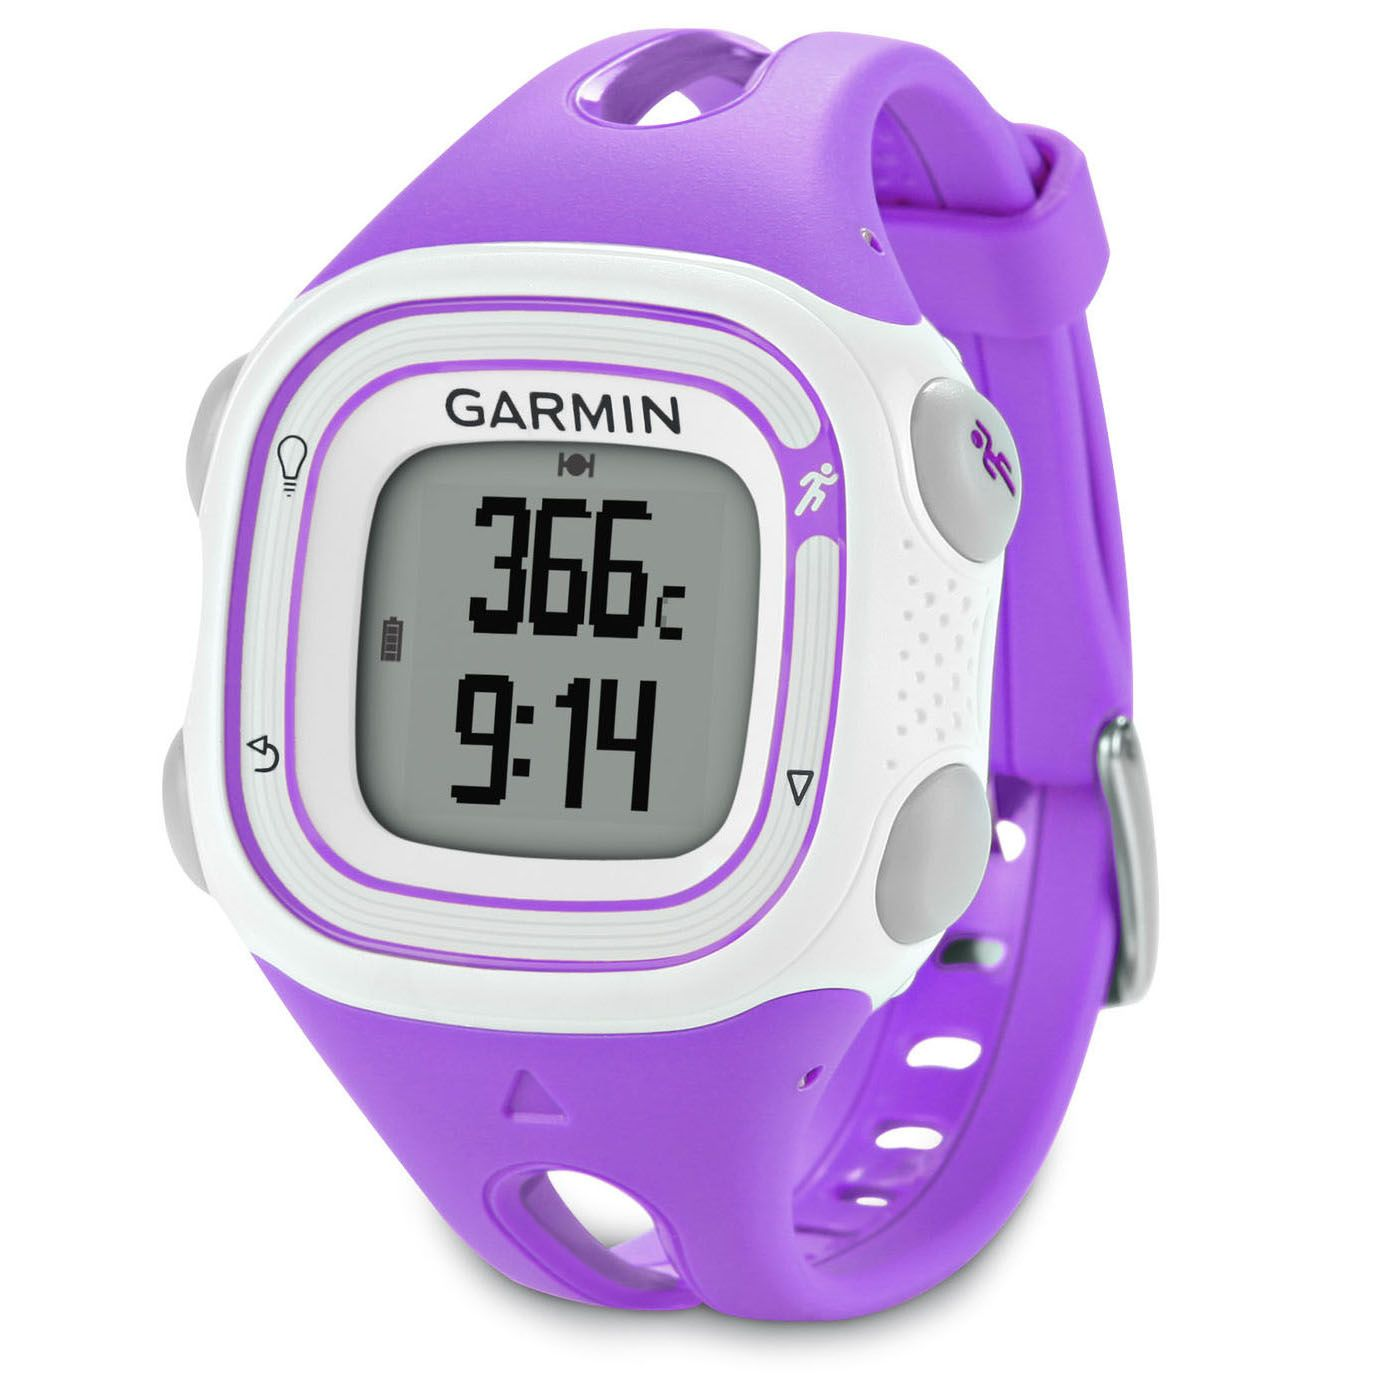 garmin forerunner 10 small gps running watch. Black Bedroom Furniture Sets. Home Design Ideas